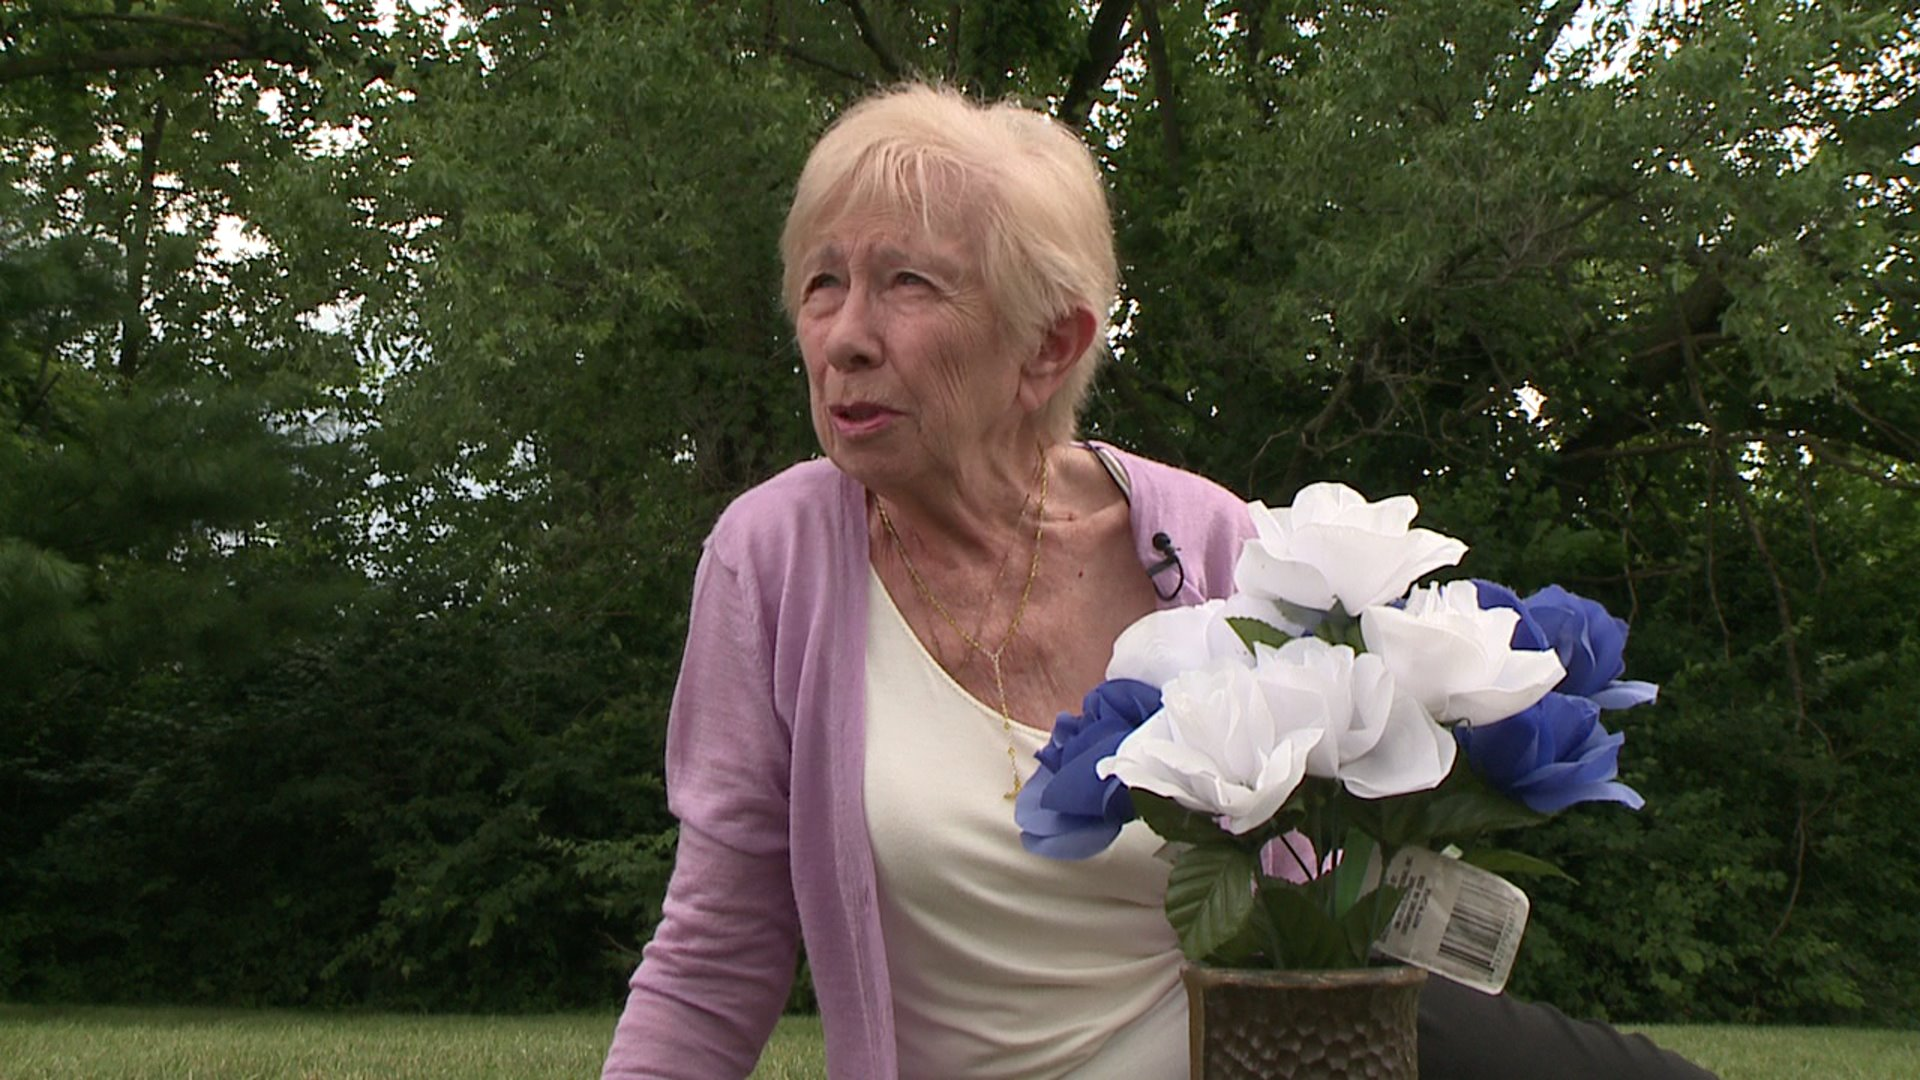 Mother of Slain Police Officer Furious Over Condition of His Gravesite